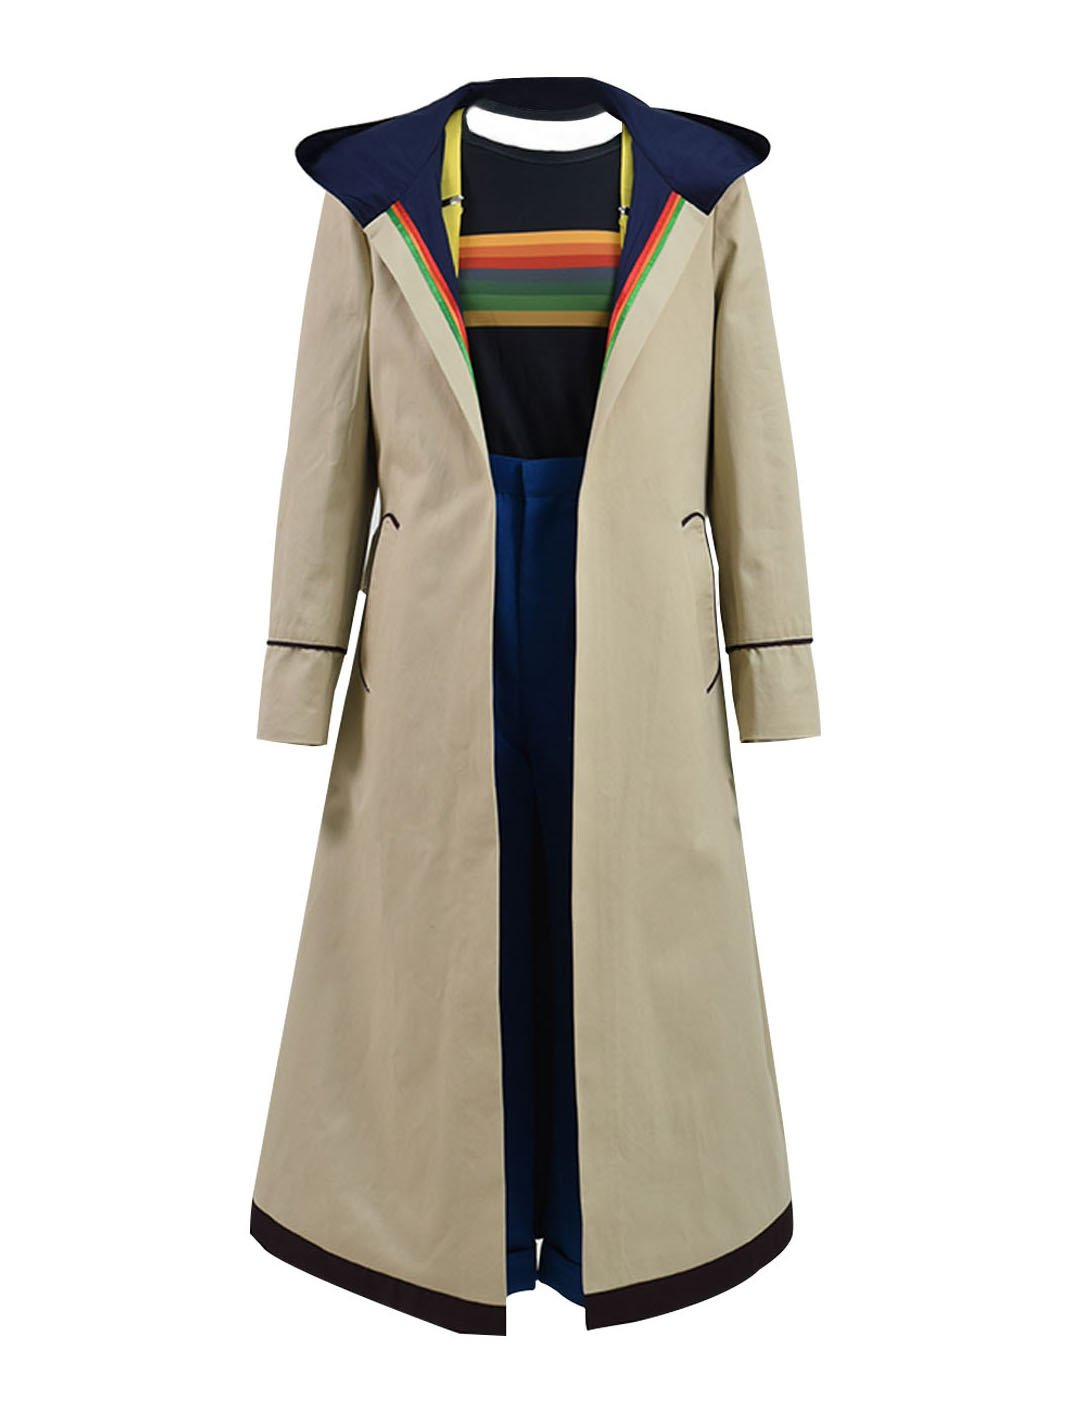 Very Last Shop Classic Sci-Fi TV Series 13th Doctor Costume Women Beige Trench Coat Overcoat (Beige Full Set, US Women-XXL) by Very Last Shop (Image #1)